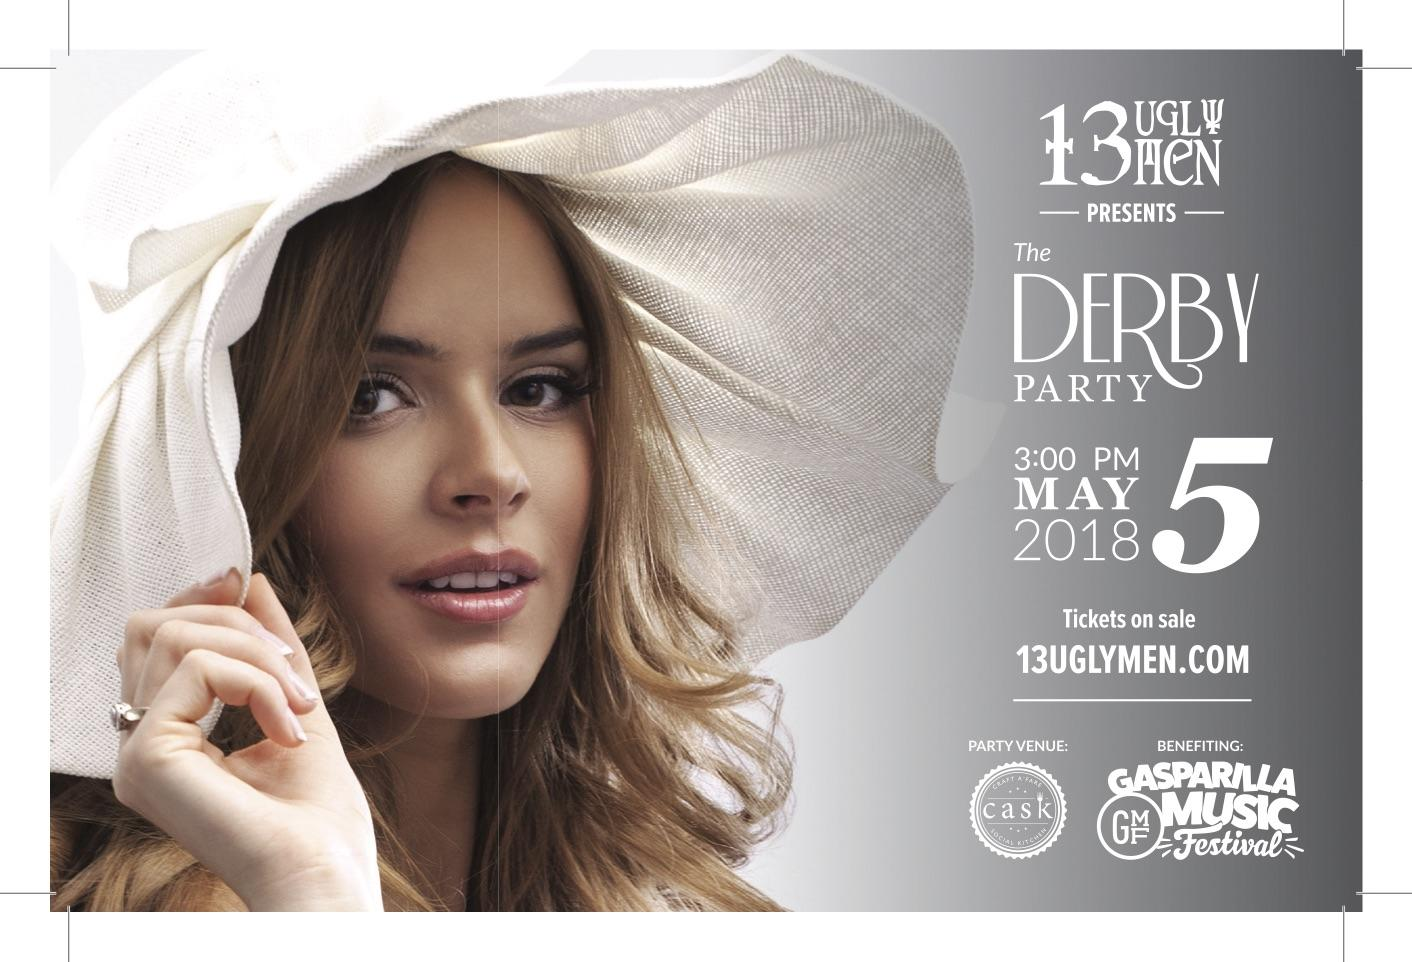 13 Ugly Men Presents The Derby Party